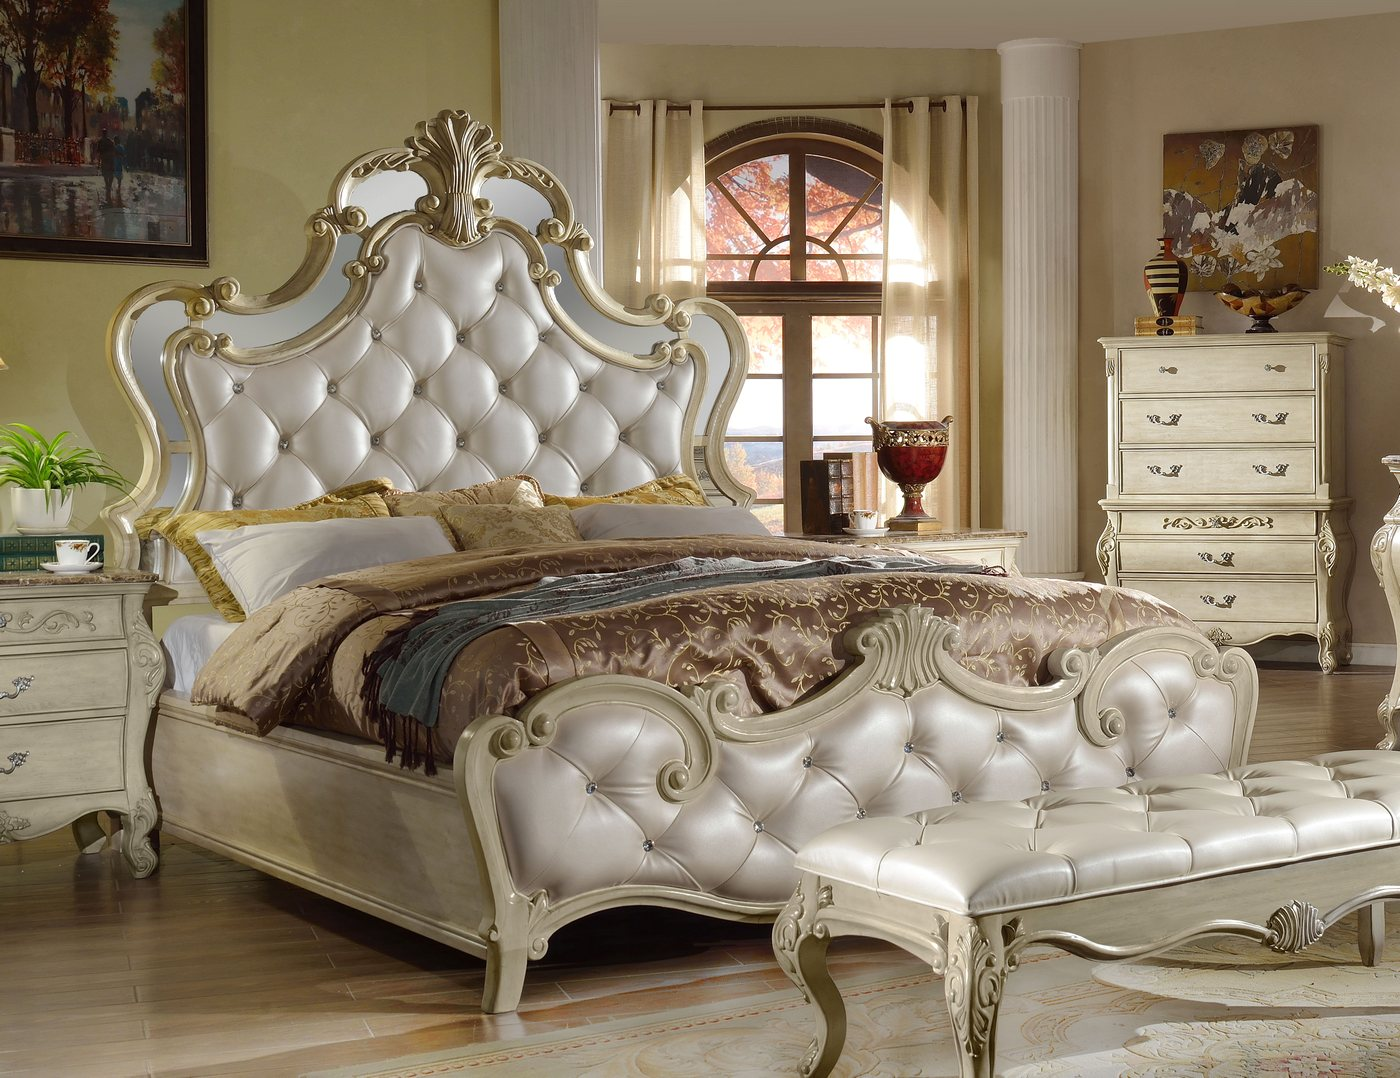 Sanctuary Antique White Queen Bed With Crystal Tufted